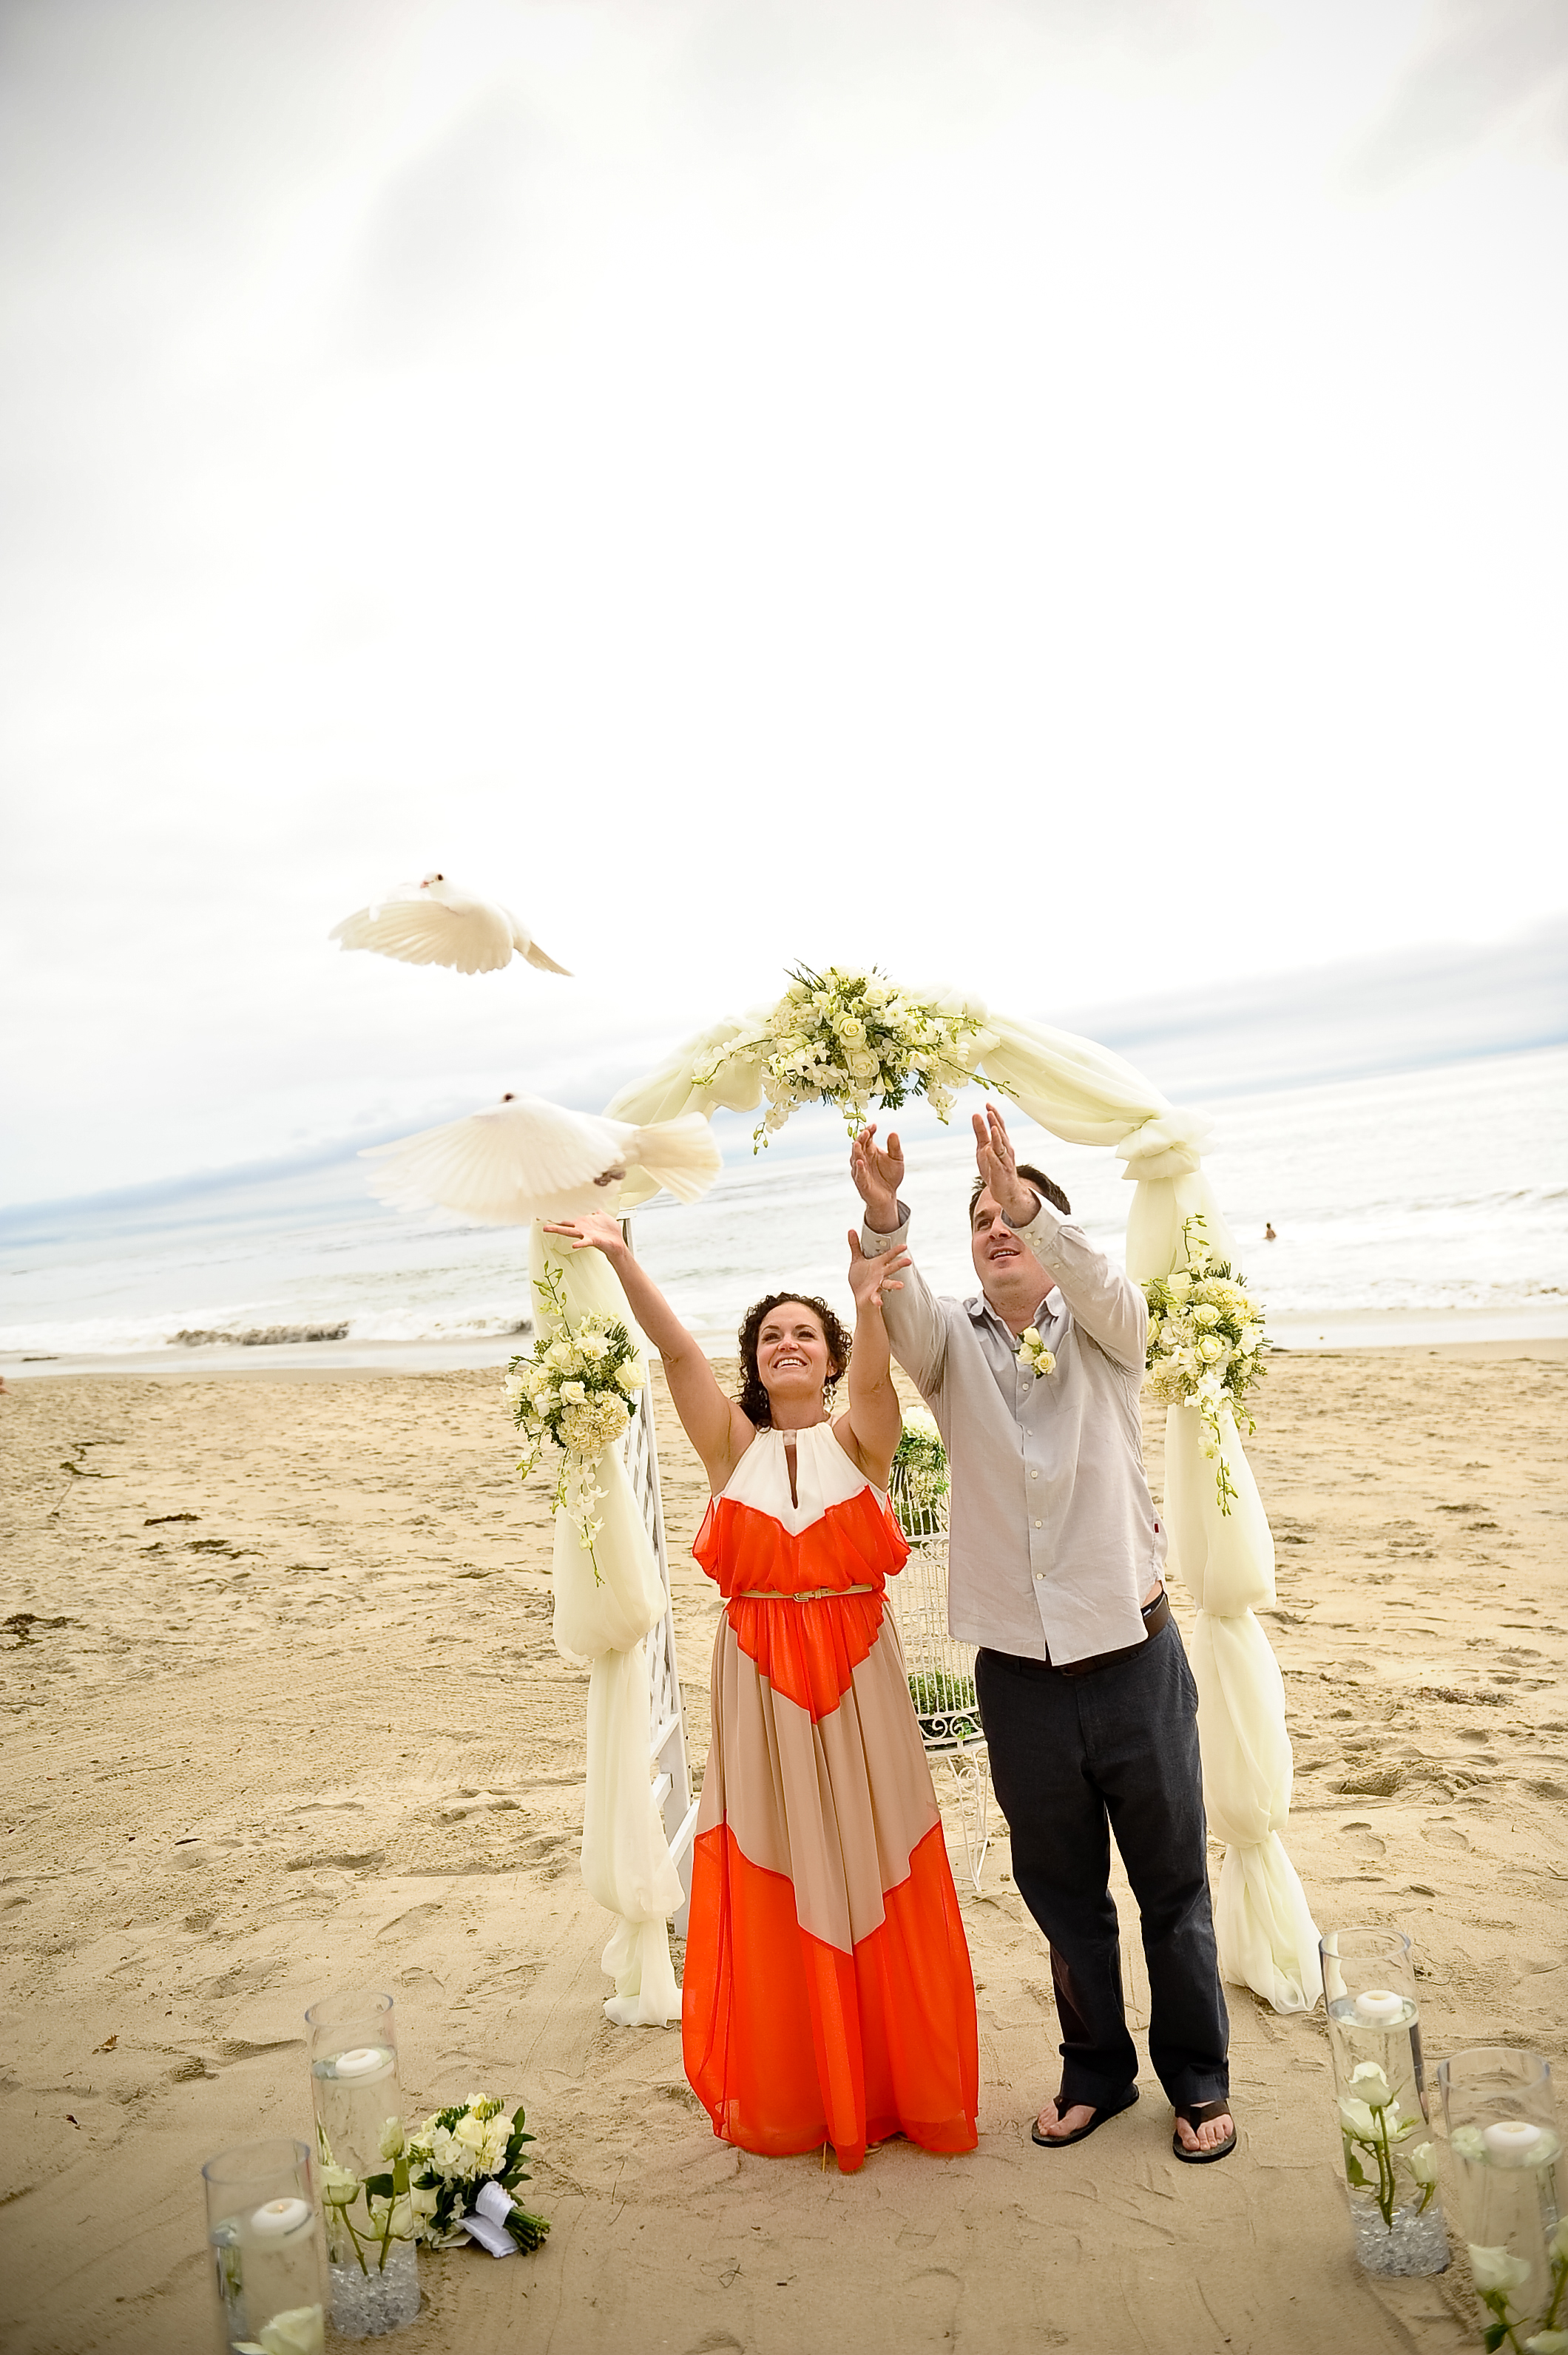 laguna beach jewish dating site Offering gourmet prepared meals, local organic produce, and a superior beer and wine selection, gelson's is socal's upscale haven for specialty foods.